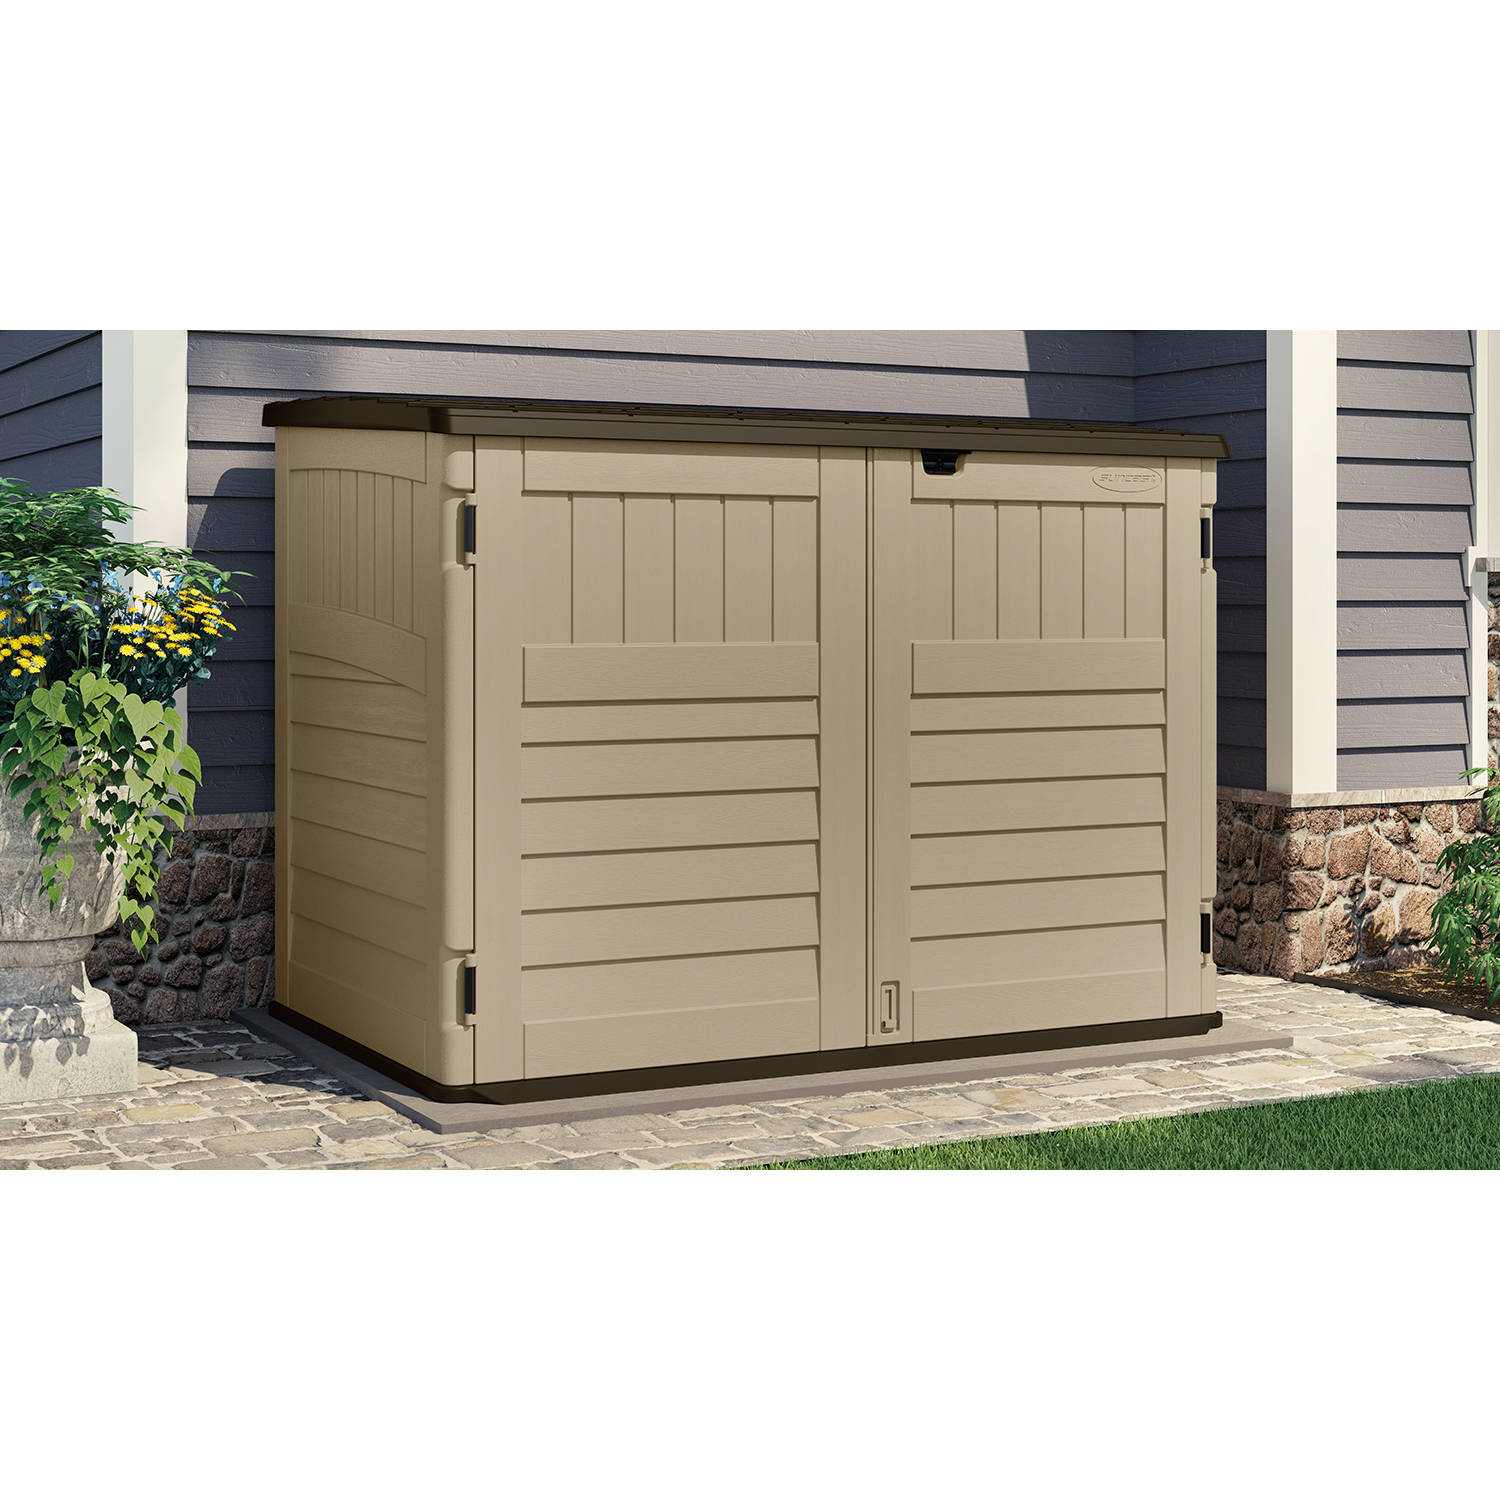 Suncast Toter Trash Can Shed, Sand